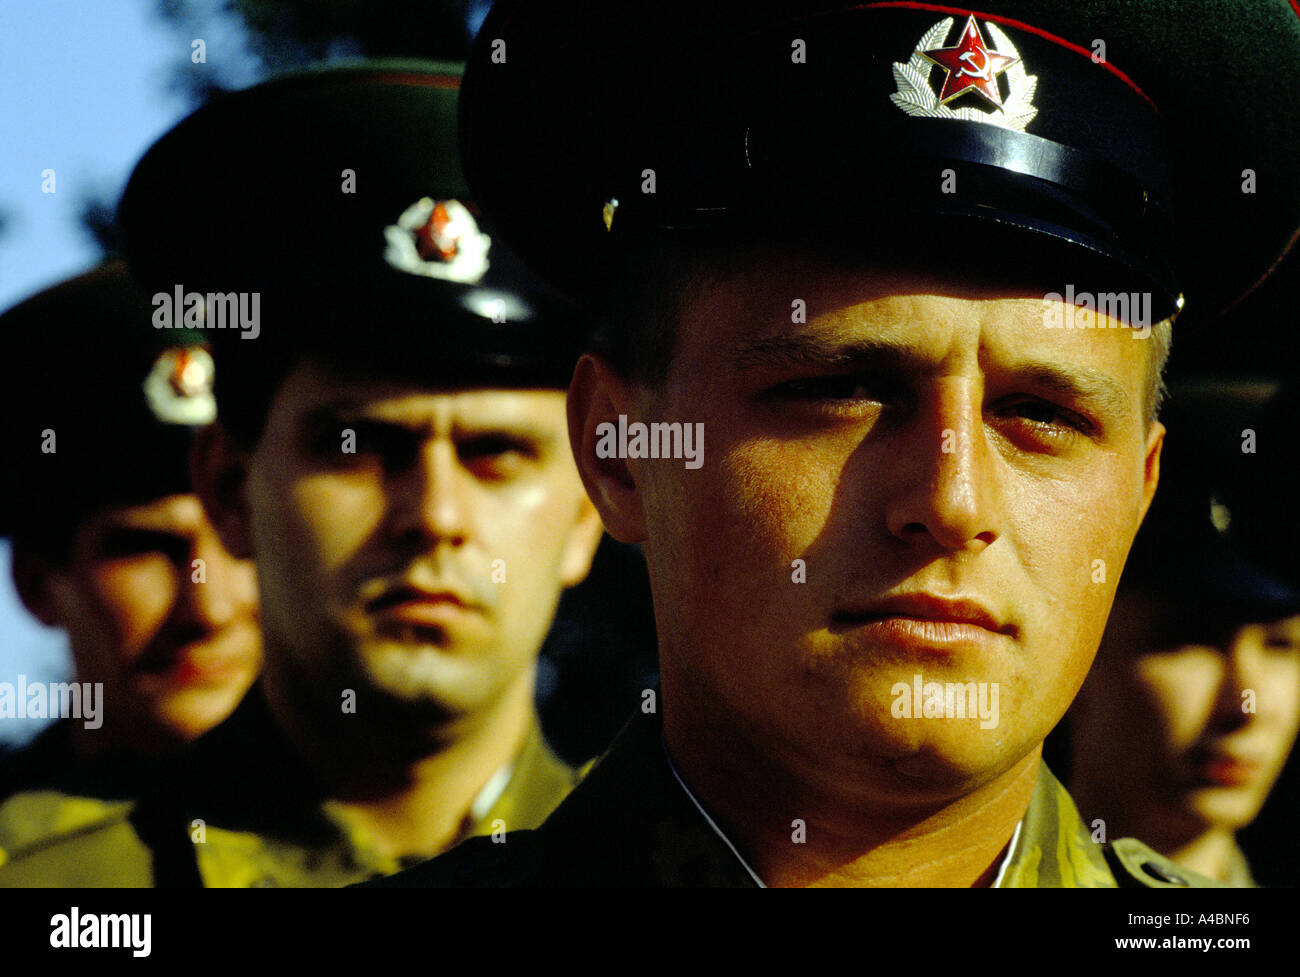 KGB border guards on parade, Gursfuv, the Crimea, Russia June 1990 - Stock Image